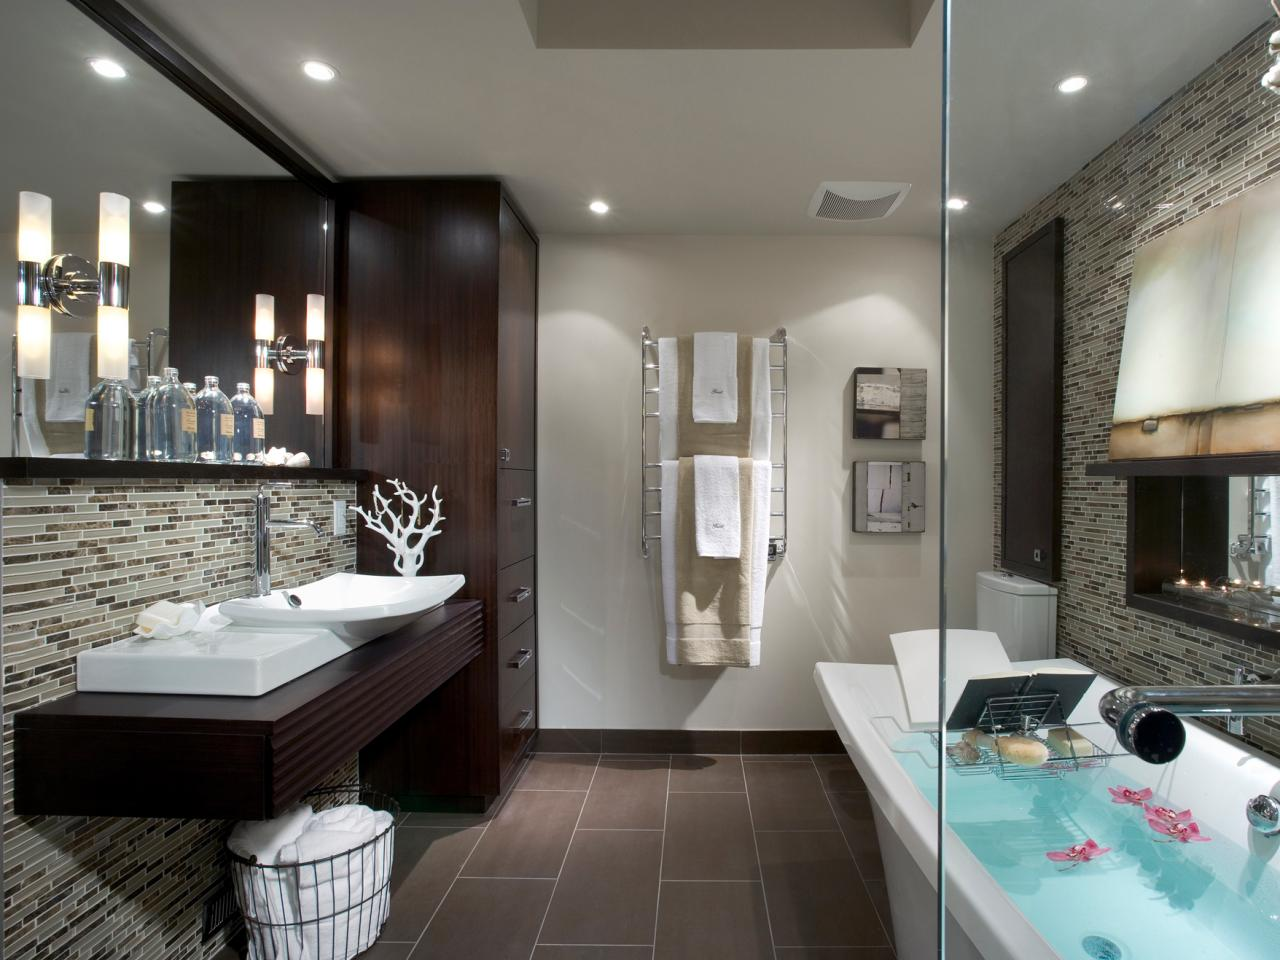 10 stylish bathroom storage solutions bathroom ideas Master bathroom designs